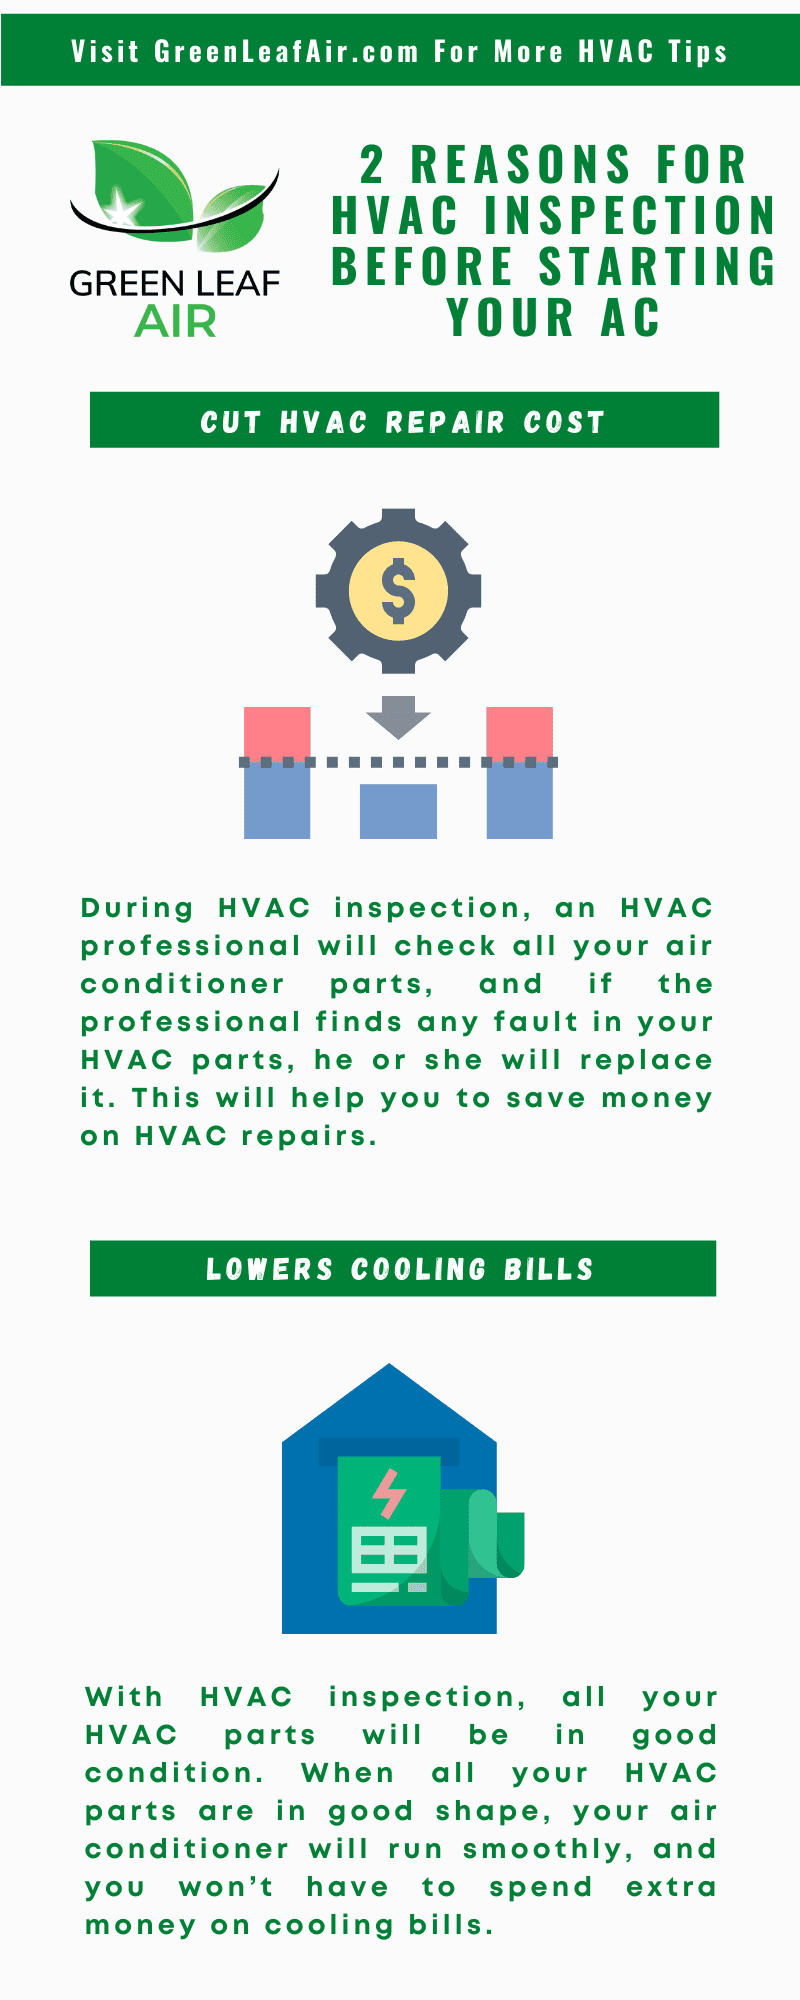 2 Reasons for HVAC Inspection before Starting Your AC